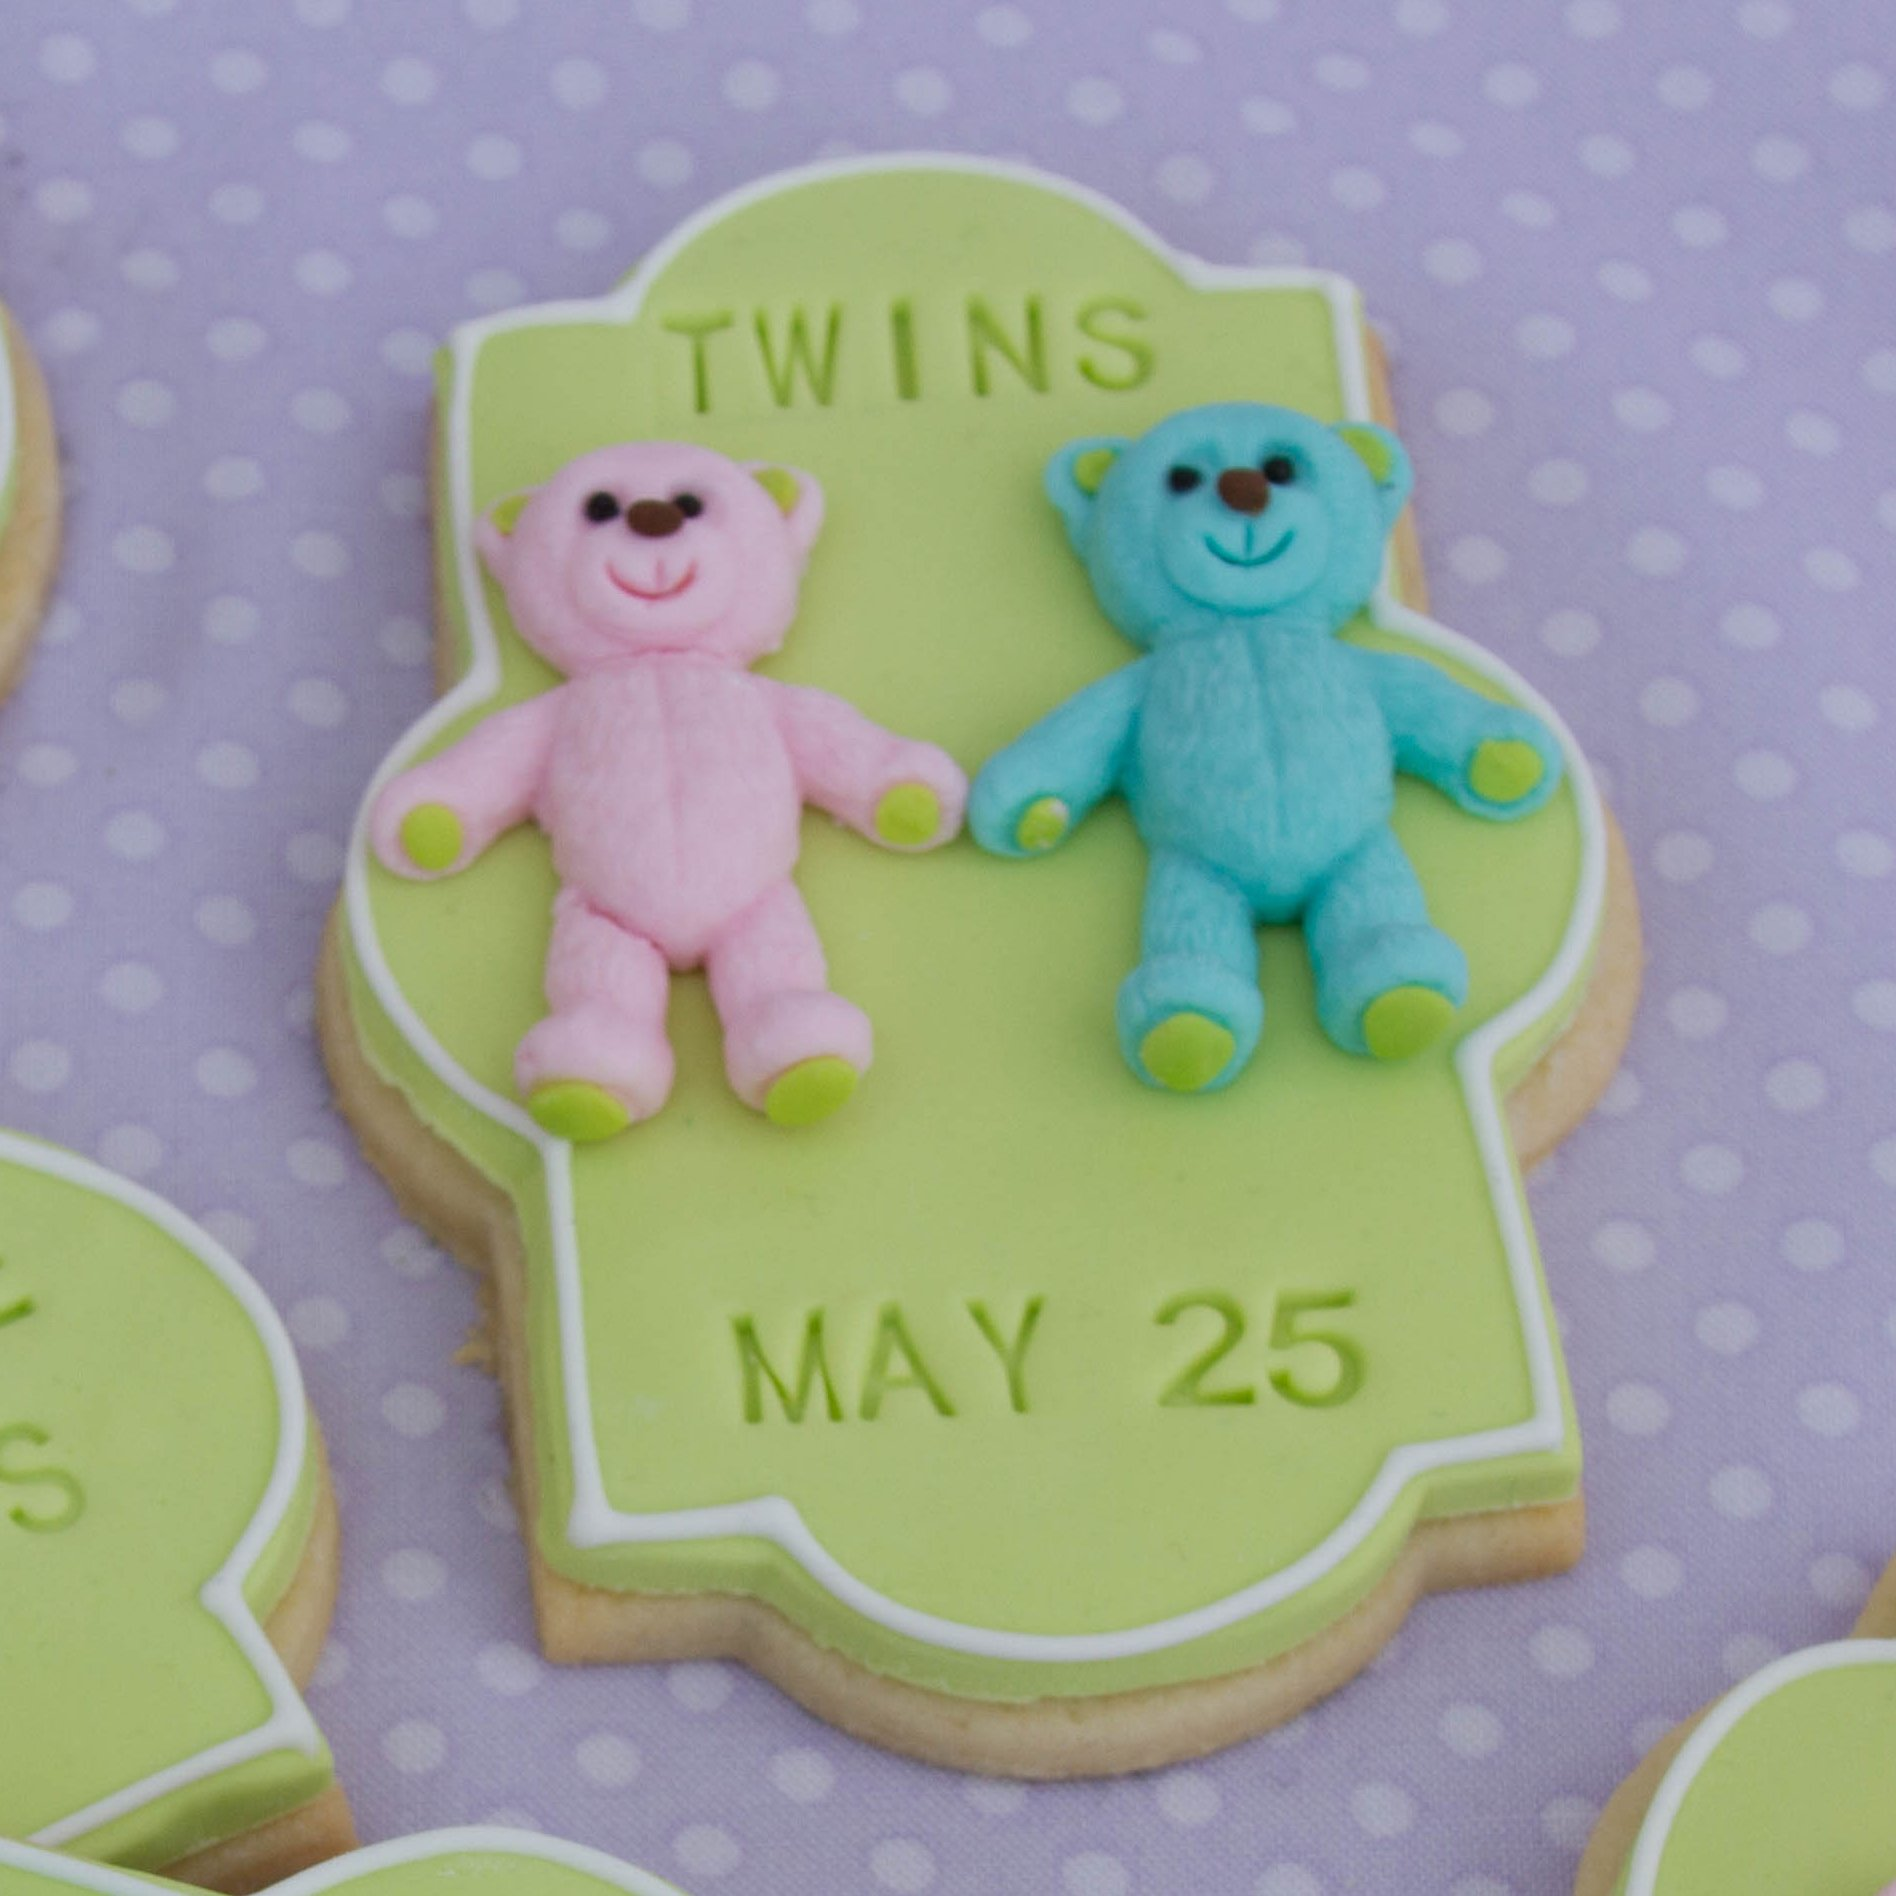 Sweet Elite Tools - Snap Together Mini Number Embosser Stamps for Cakes, Cupcakes, Cookies, Rolled Fondant, Gumpaste, or Clay -by Autumn Carpenter by Sweet Elite Tools (Image #3)